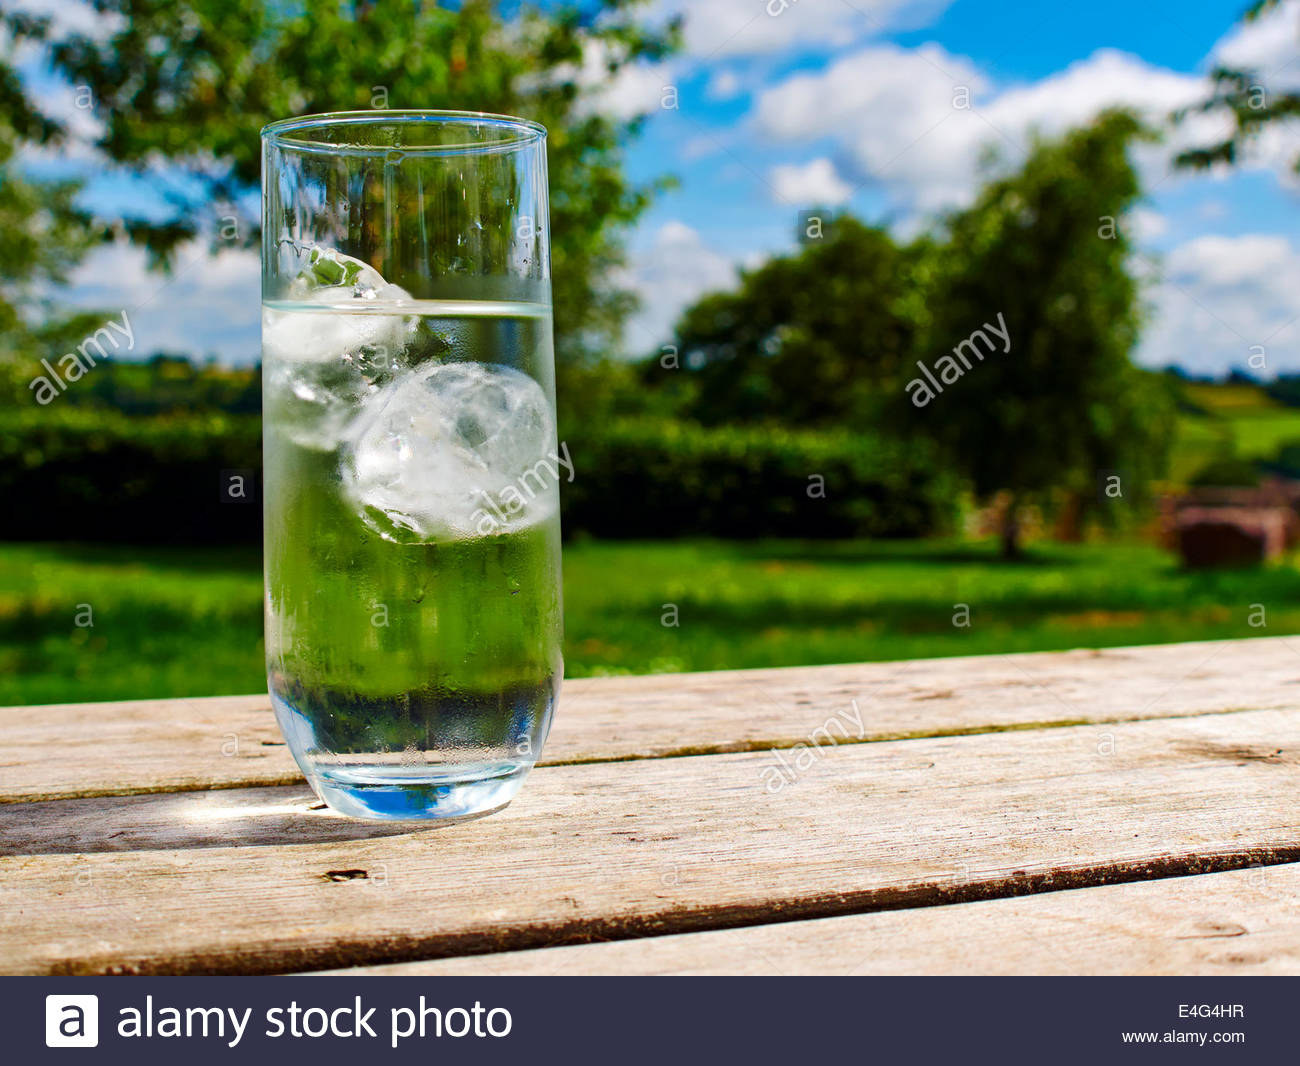 Stock Photo   Ice Cold Drink Glass Water On A Wooden Table Outside In The  Sunshine In A Garden